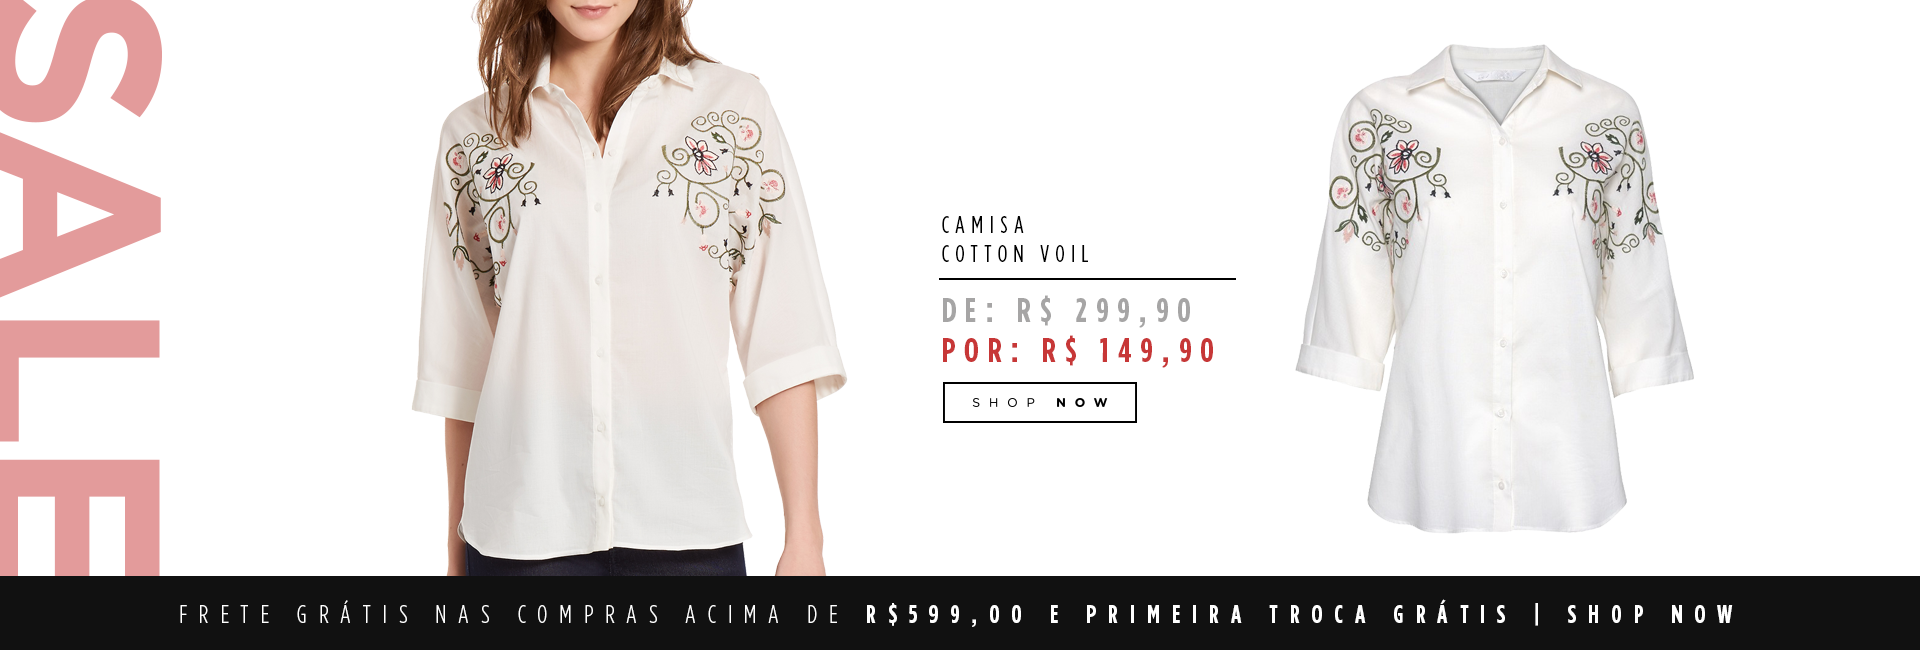 Camisa cotton voil